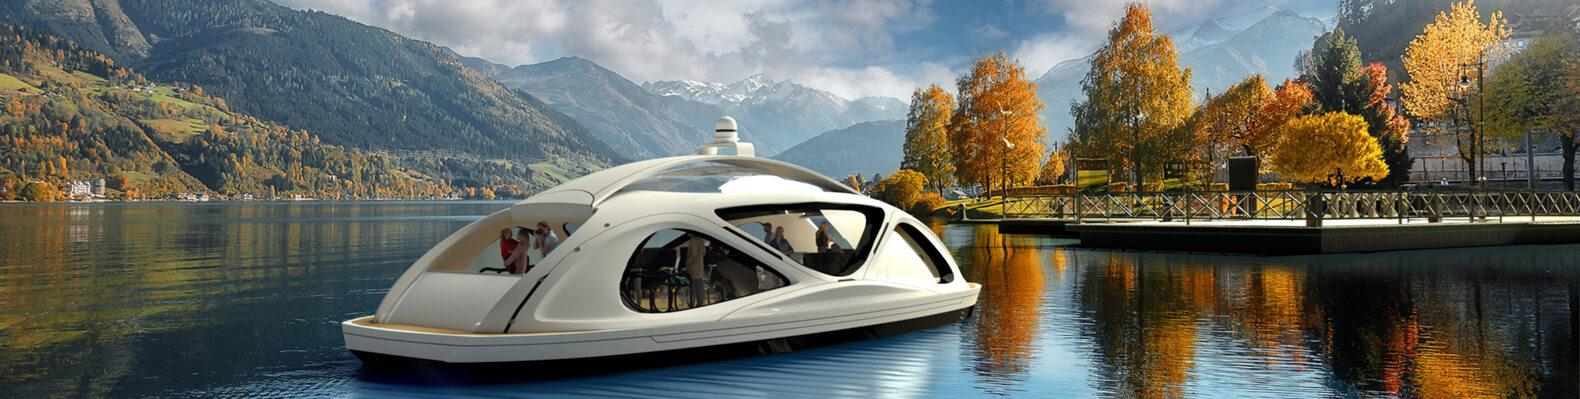 white pod-like ferry on water with autumnal trees and snow-capped mountains in the background